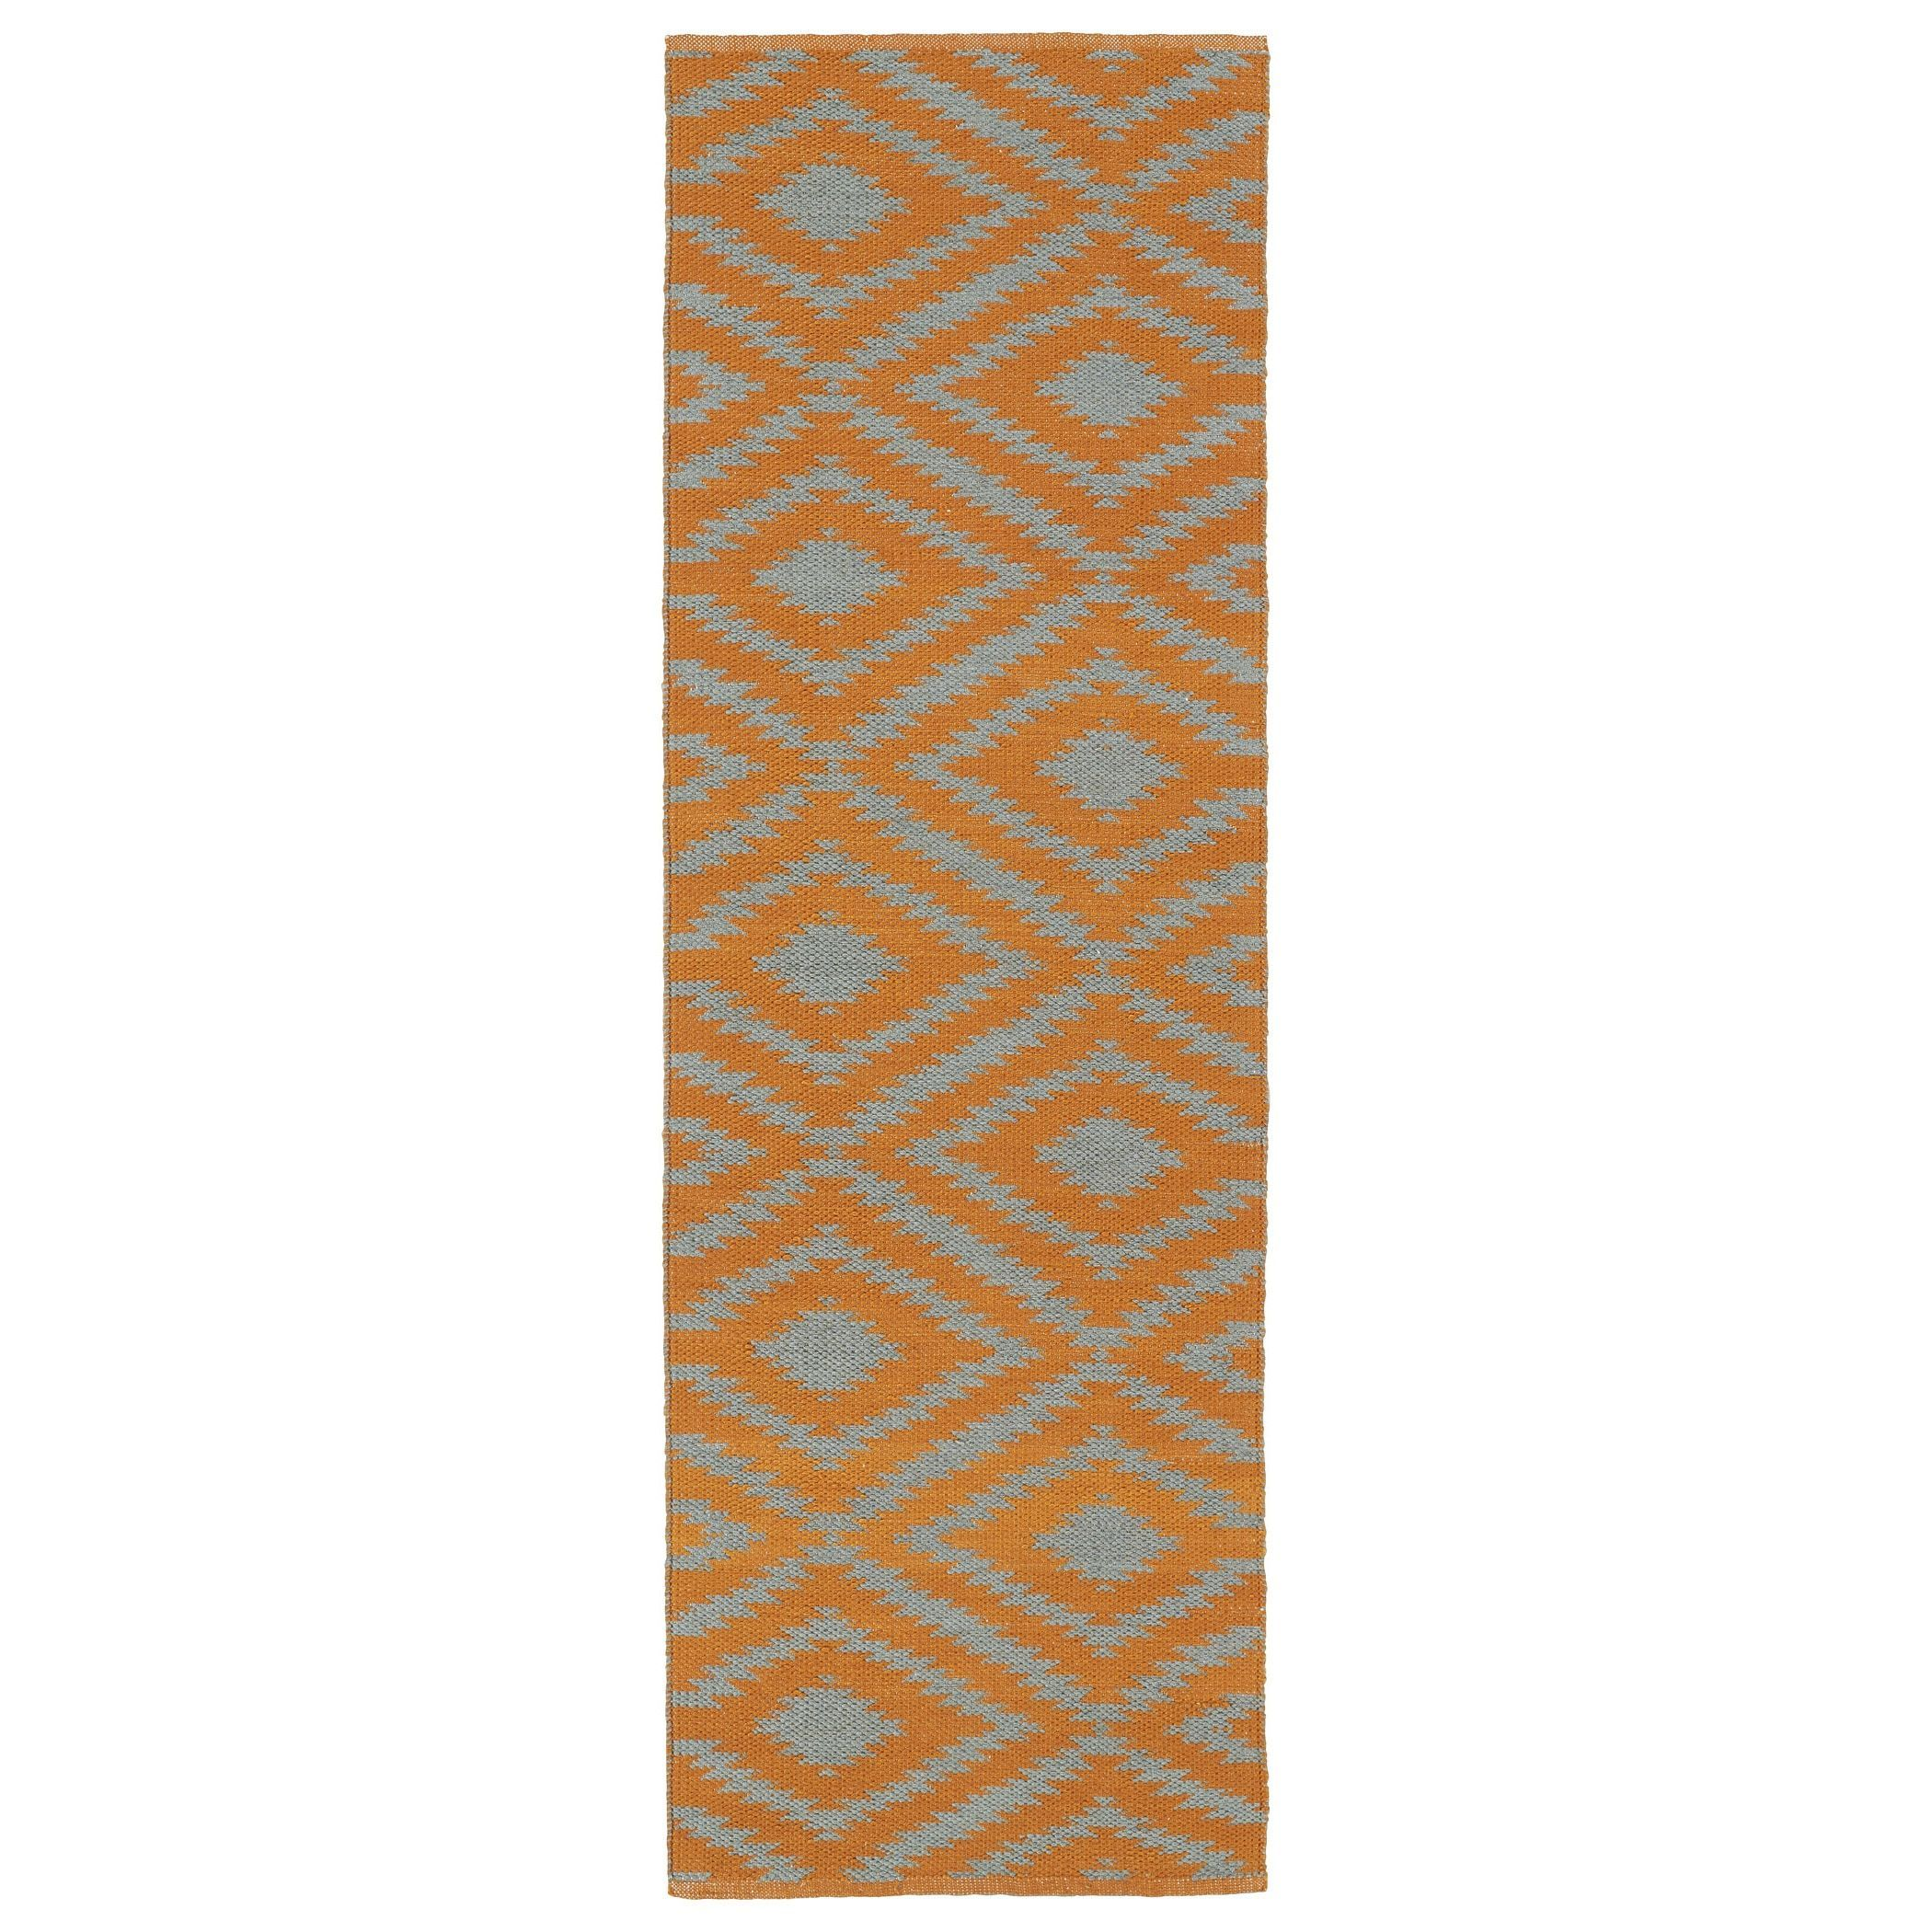 Kaleen Rugs Indoor/Outdoor Laguna Orange and Grey Ikat Flat-Weave Rug (2'0 x 6'0) (2'0 x 6'0), Size 2' x 6'